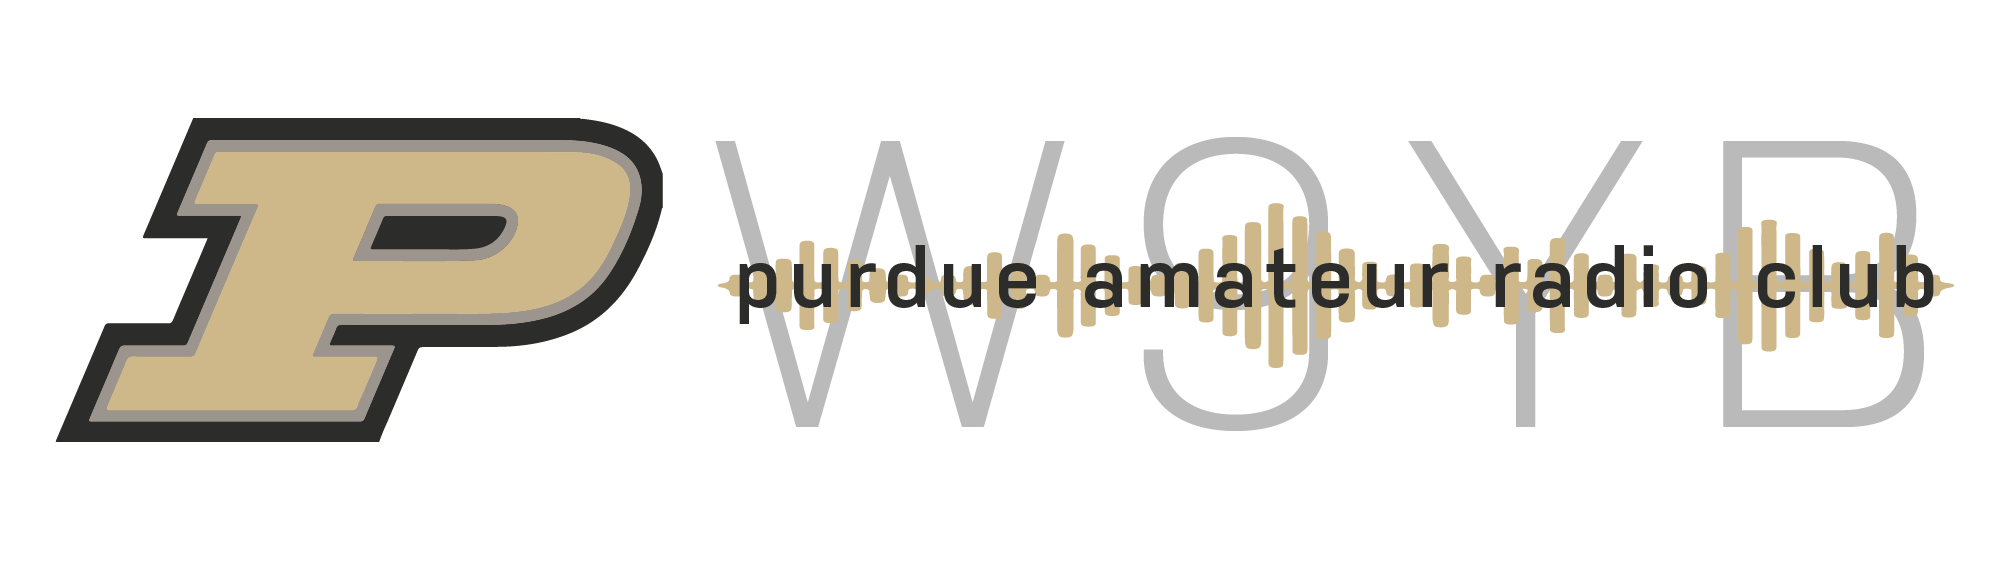 W9YB | Purdue Amateur Radio Club